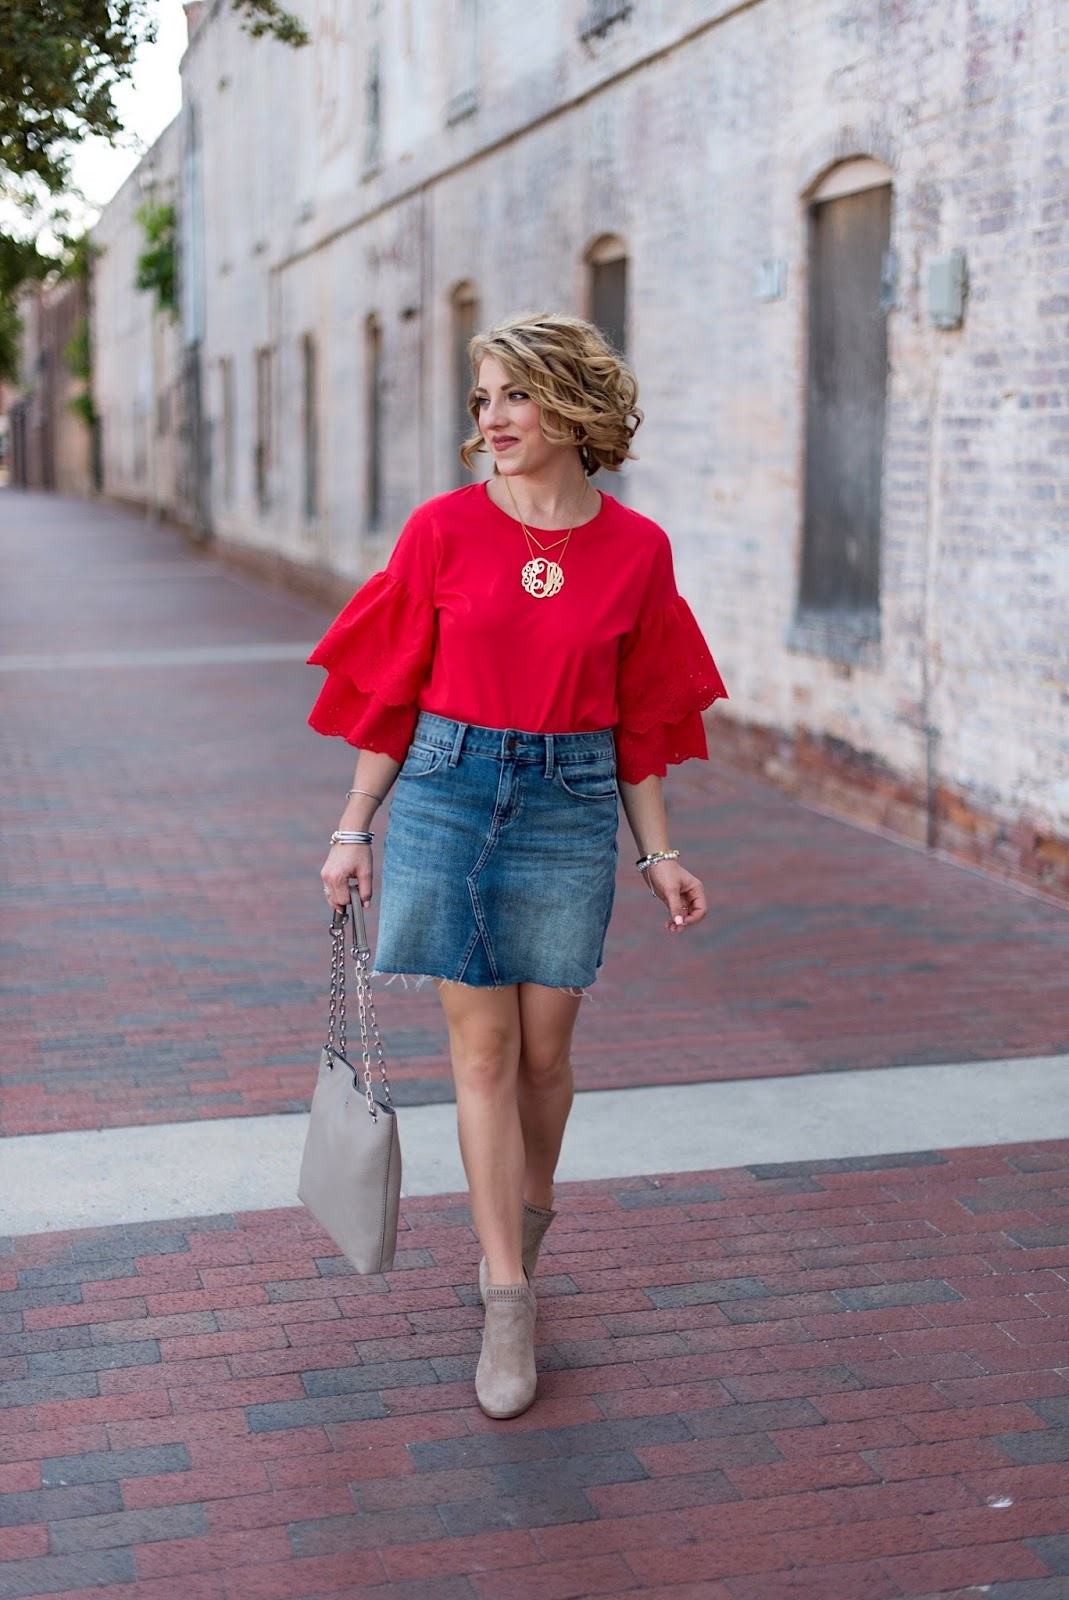 Eyelet Ruffle Sleeve T-Shirt - Click through to see more on Something Delightful Blog!